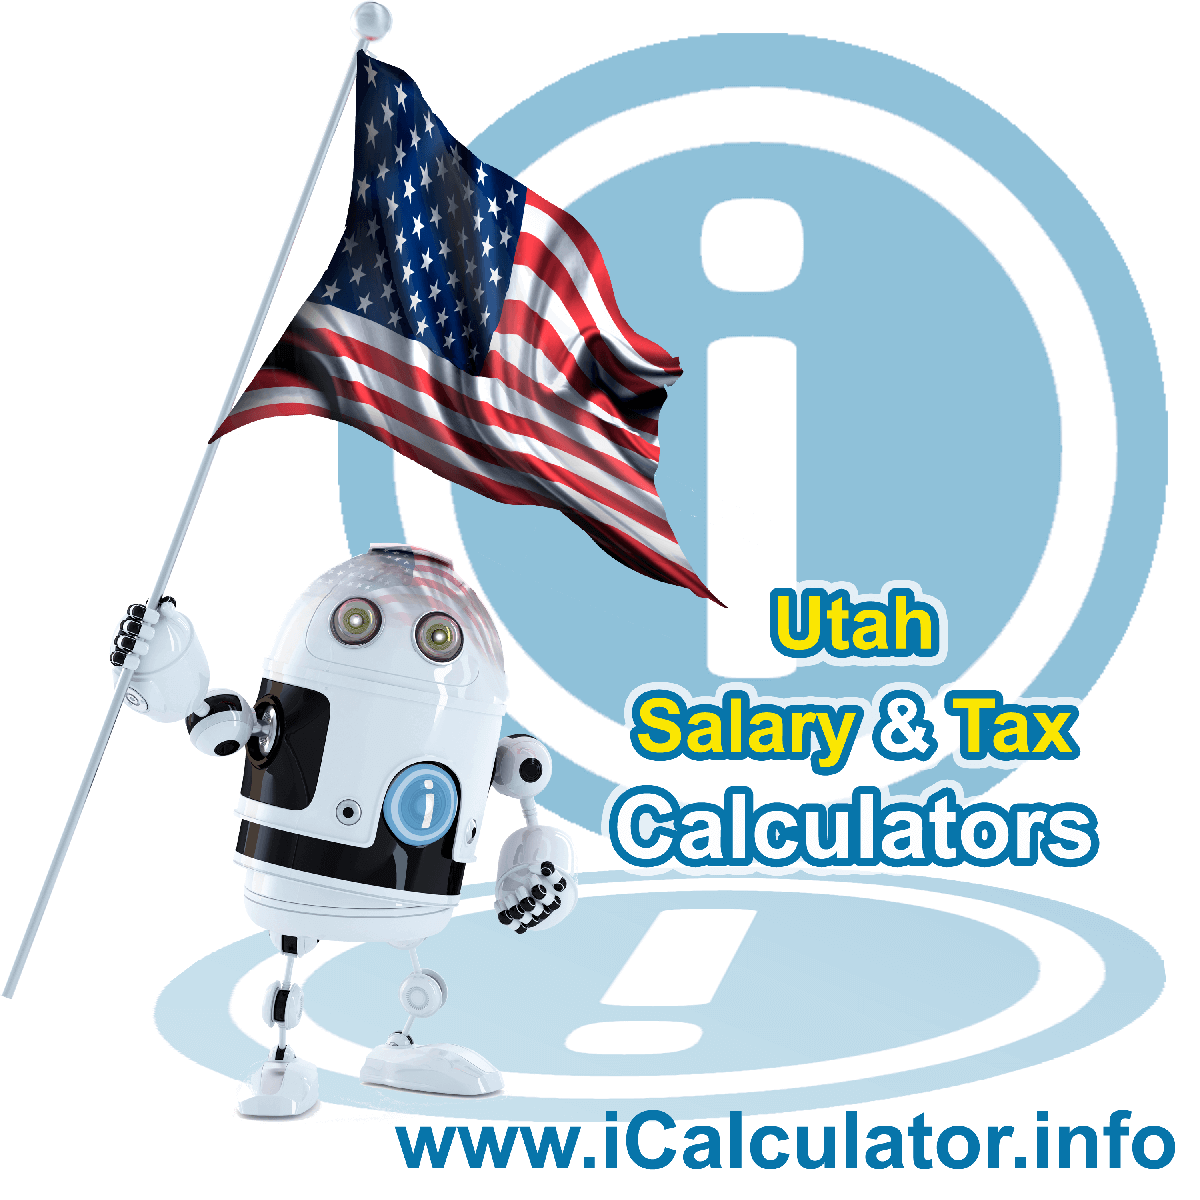 Utah Salary Calculator 2021 | iCalculator™ | The Utah Salary Calculator allows you to quickly calculate your salary after tax including Utah State Tax, Federal State Tax, Medicare Deductions, Social Security, Capital Gains and other income tax and salary deductions complete with supporting Utah state tax tables